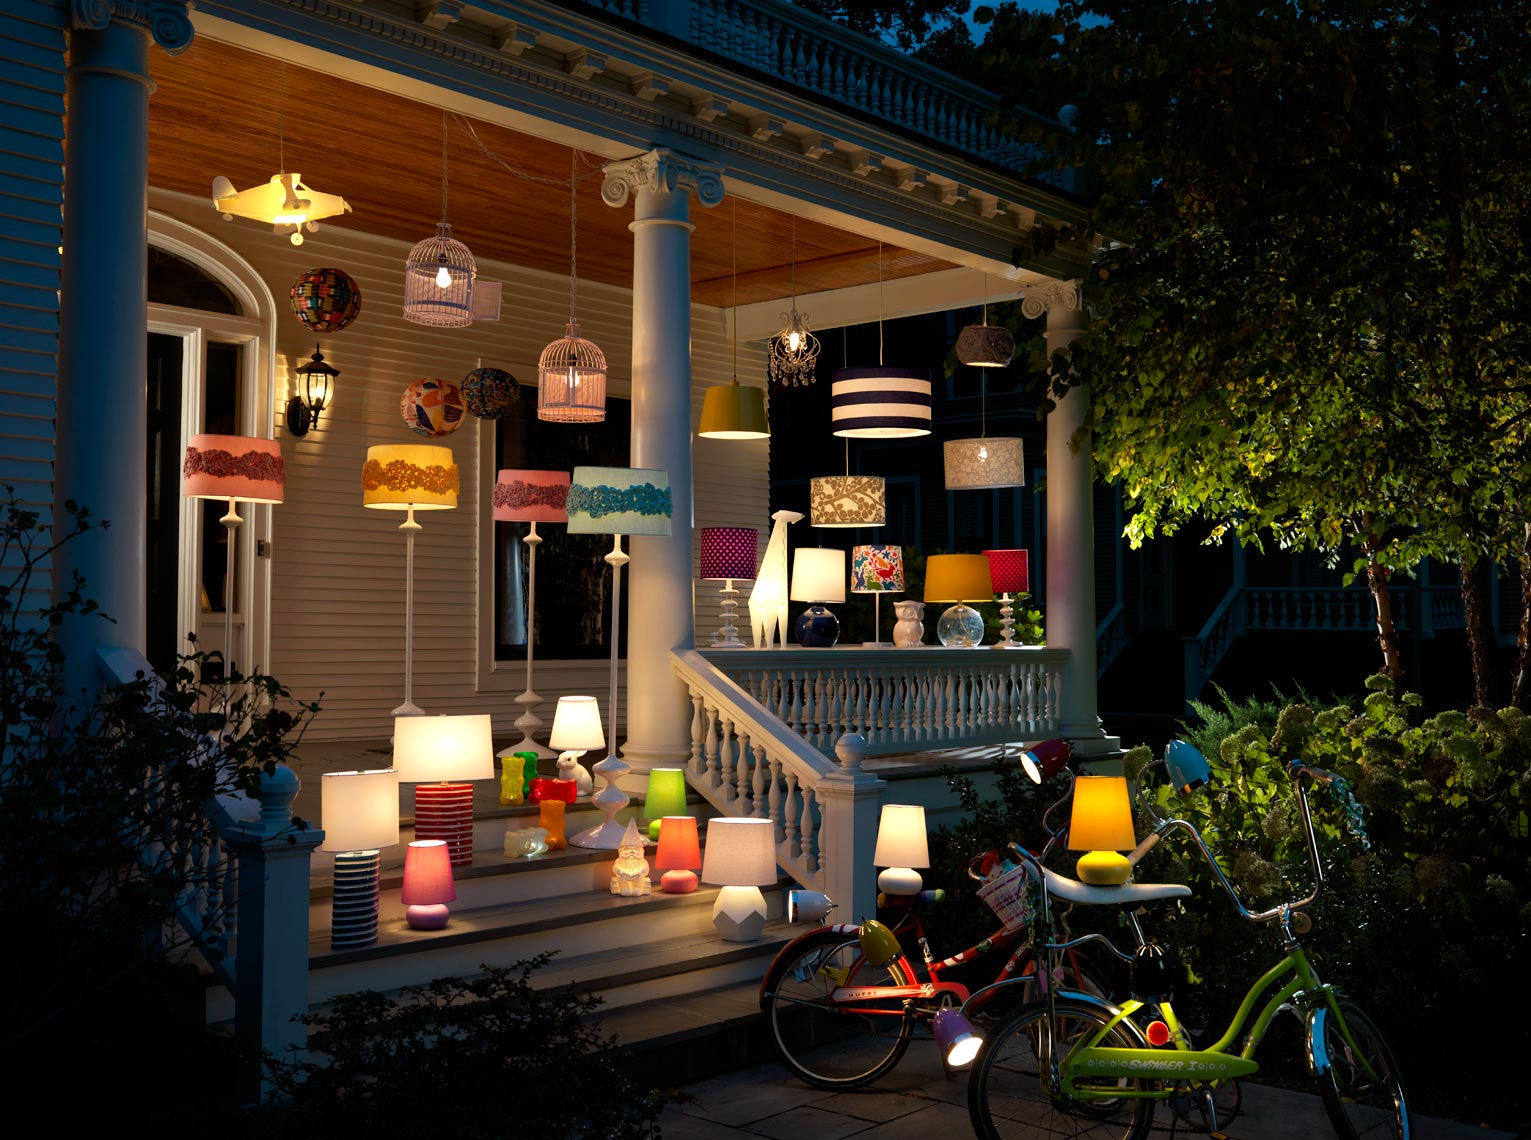 Nod.PorchLamps